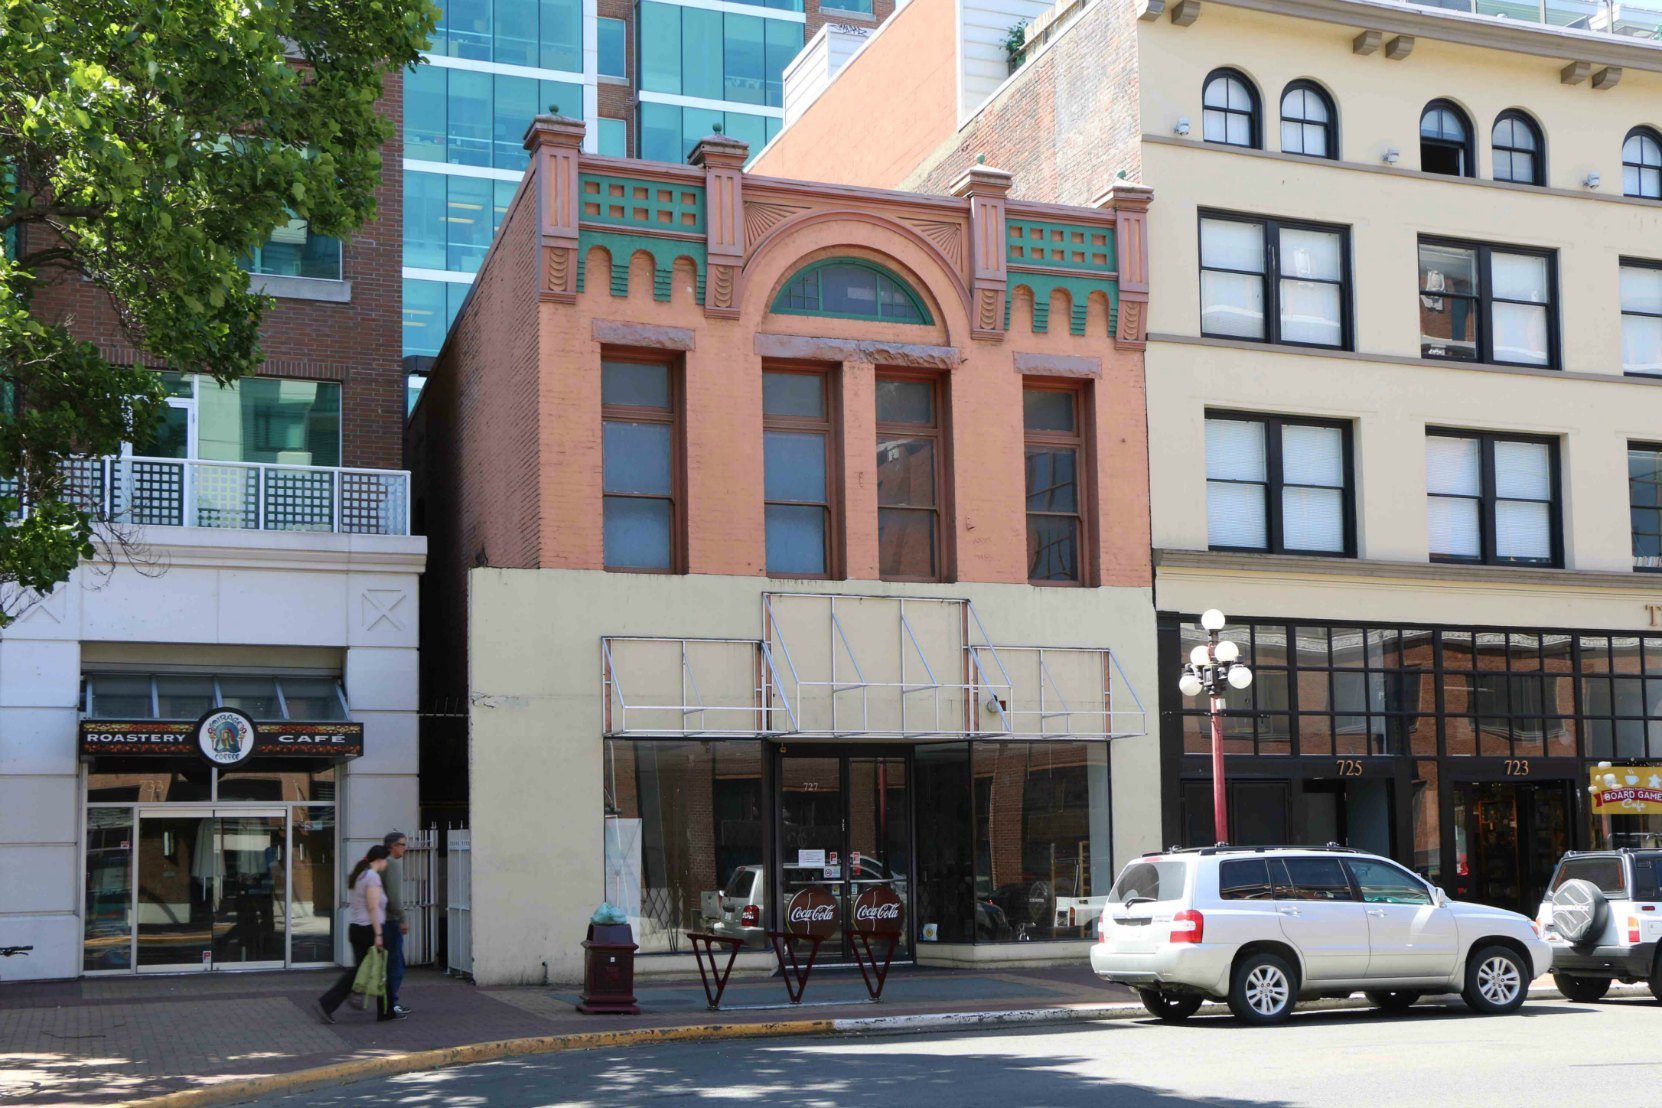 727-729 Yates Street was designed and built in 1897 by architect John Teague for real estate investor Dr. F.W. Hall.